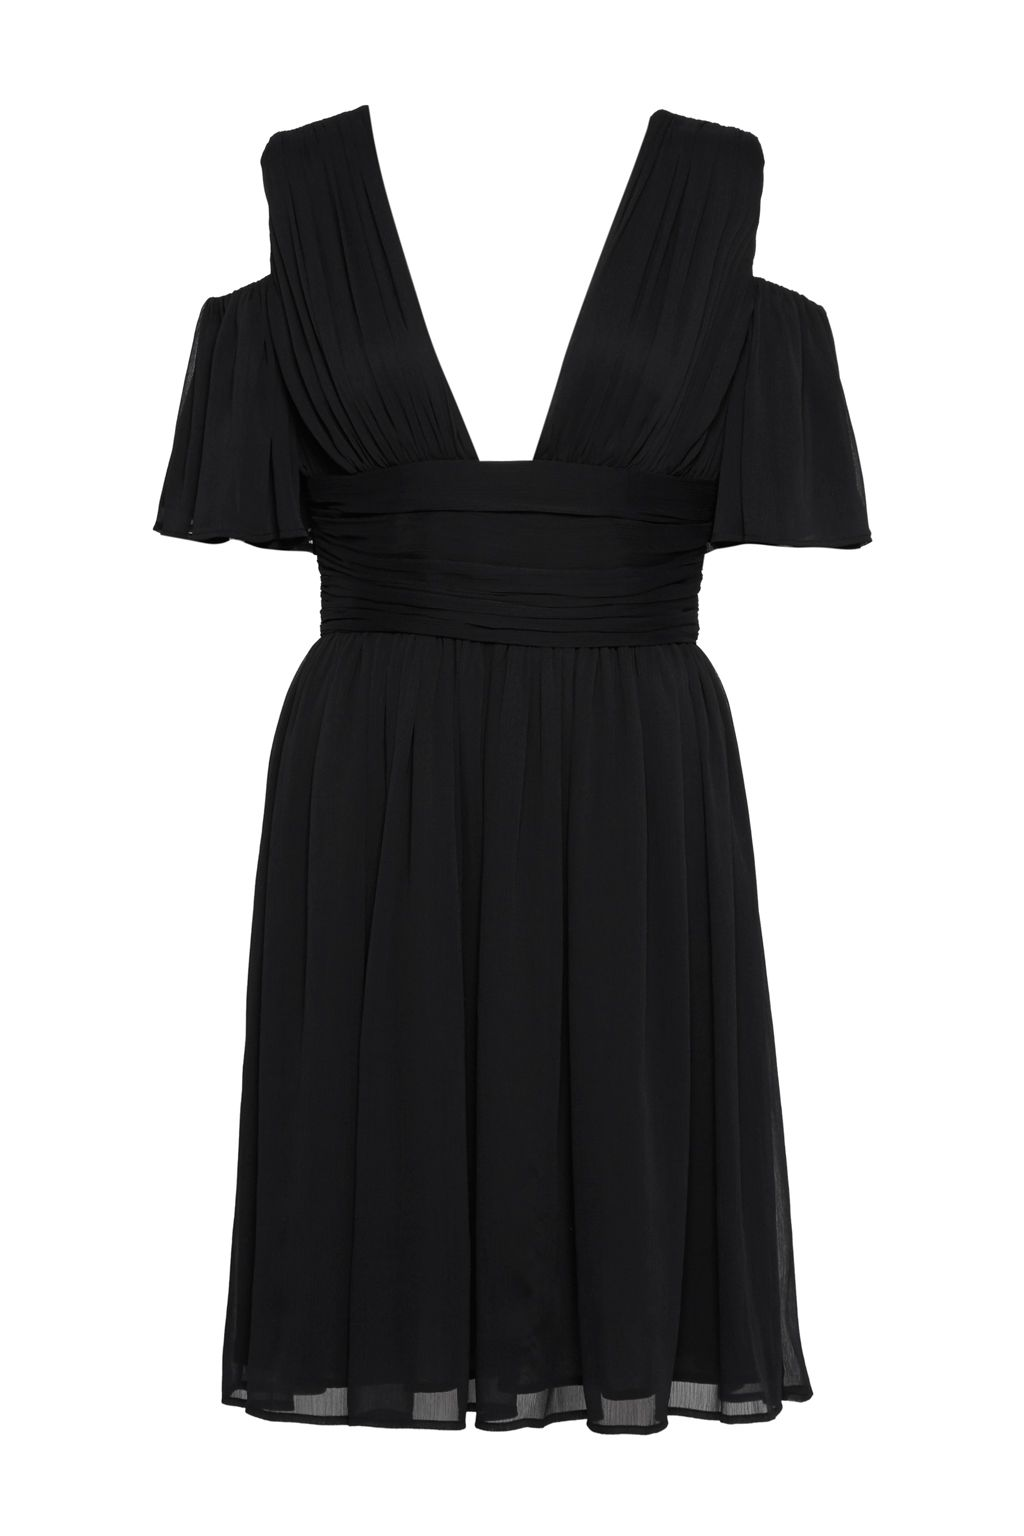 French Connection Constance Draped Cold Shoulder Midi Dress, Black